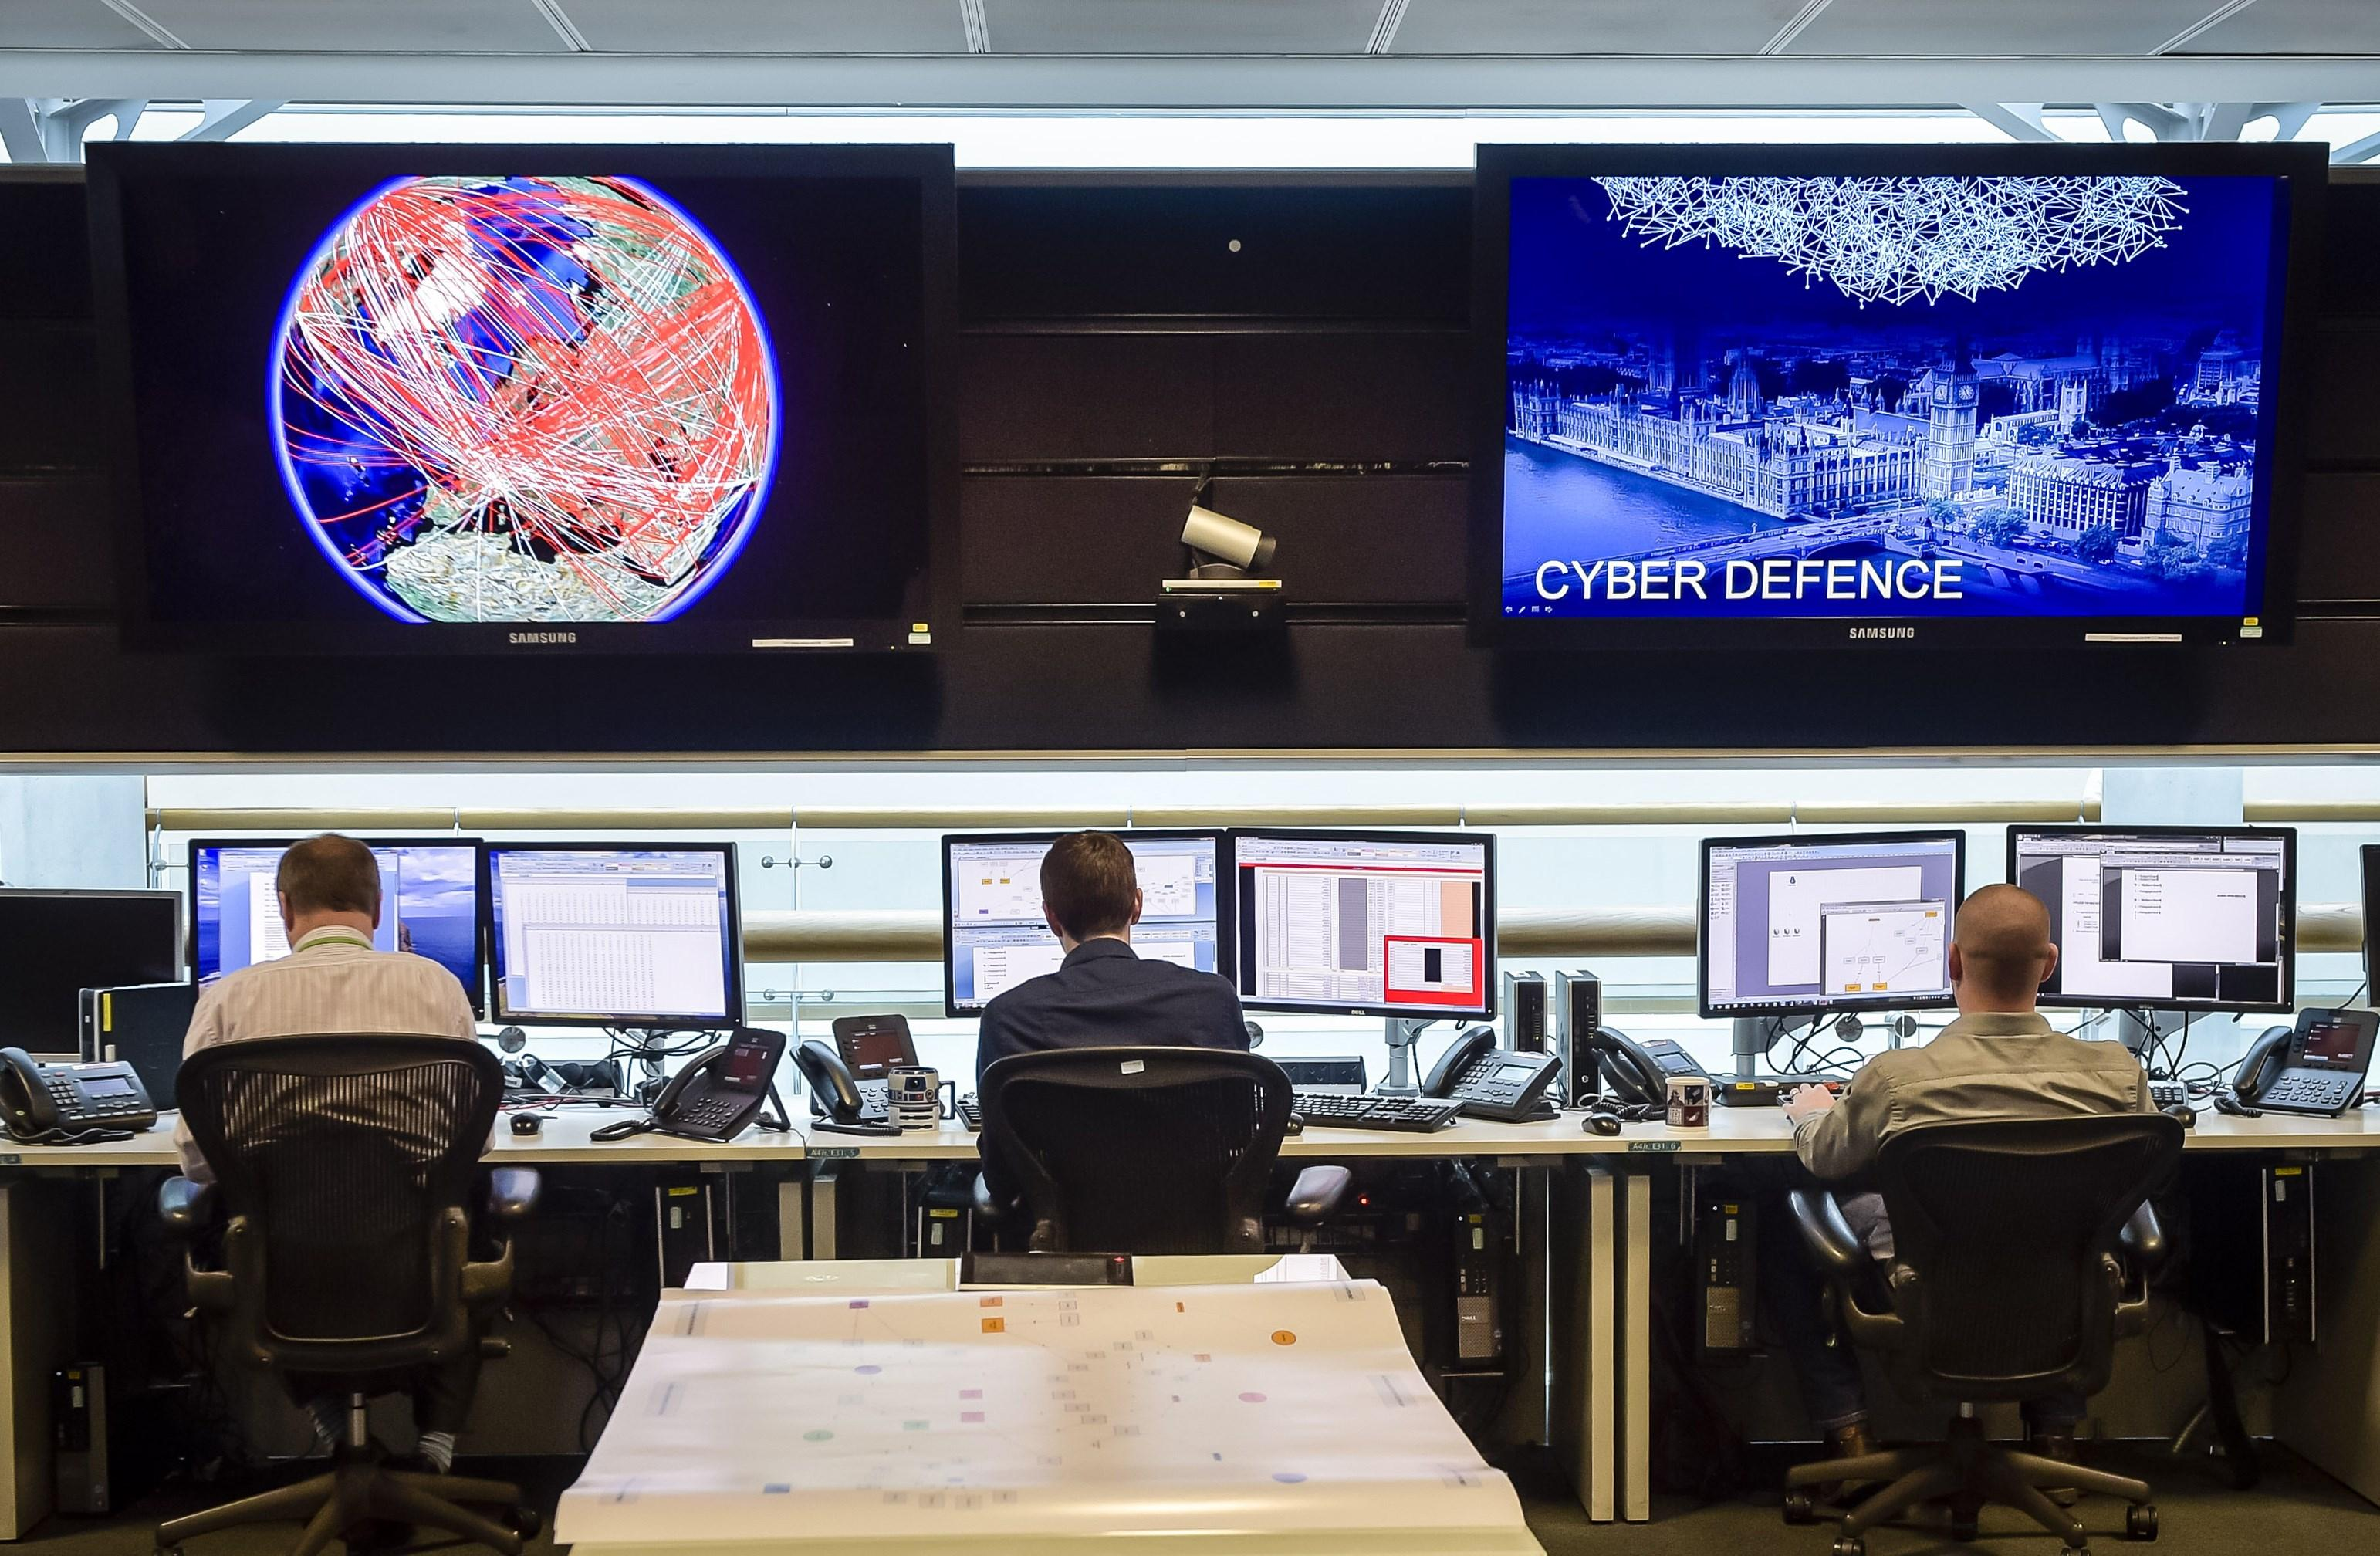 General view of the 24-hour operations room at GCHQ in Cheltenham, England.